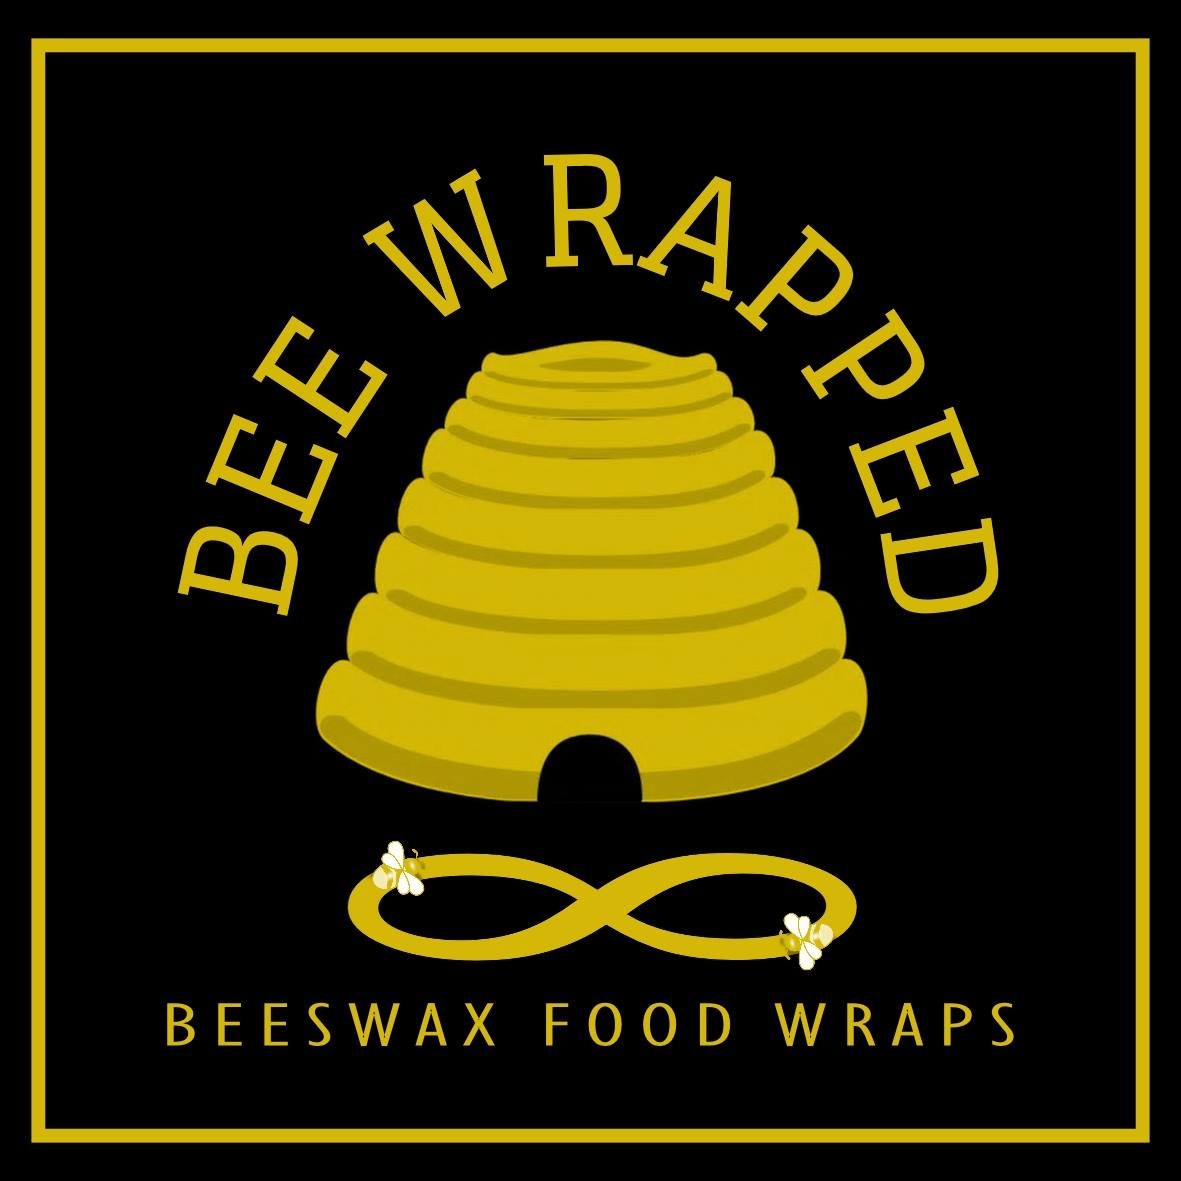 Bee Wrapped Beeswax Food Wraps